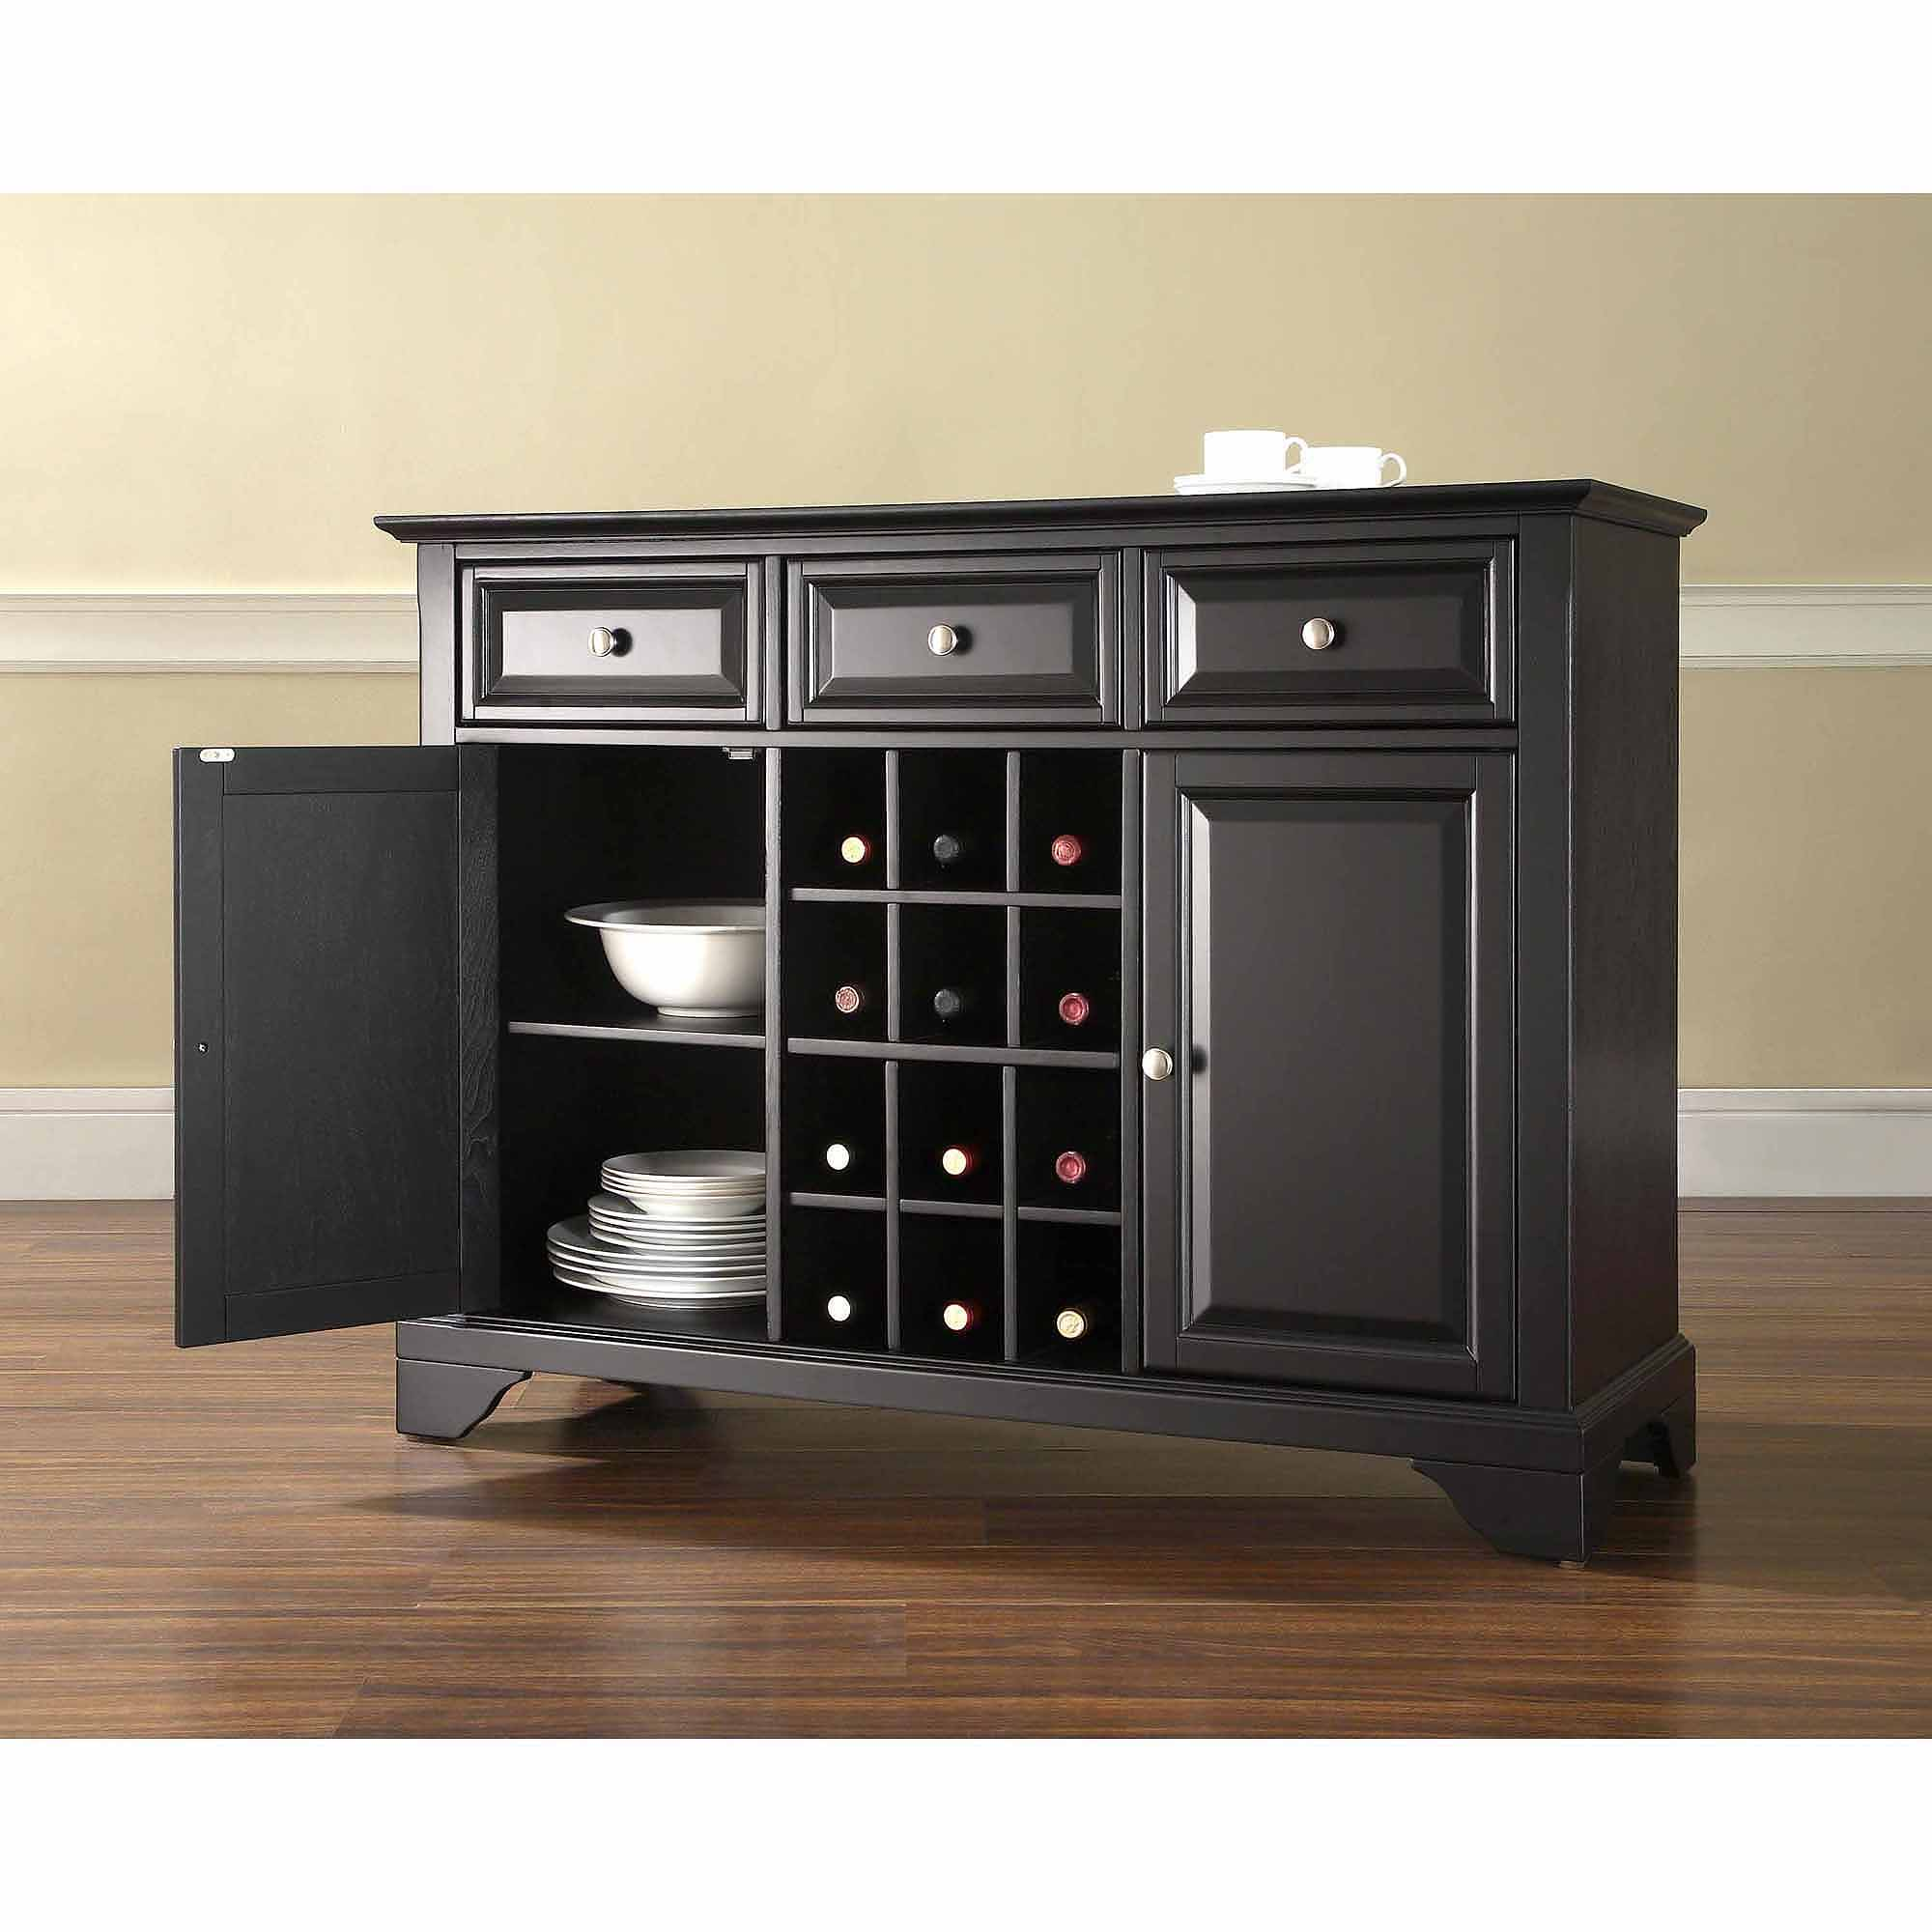 Crosley Furniture LaFayette Buffet Server and Sideboard Cabinet with Wine Storage